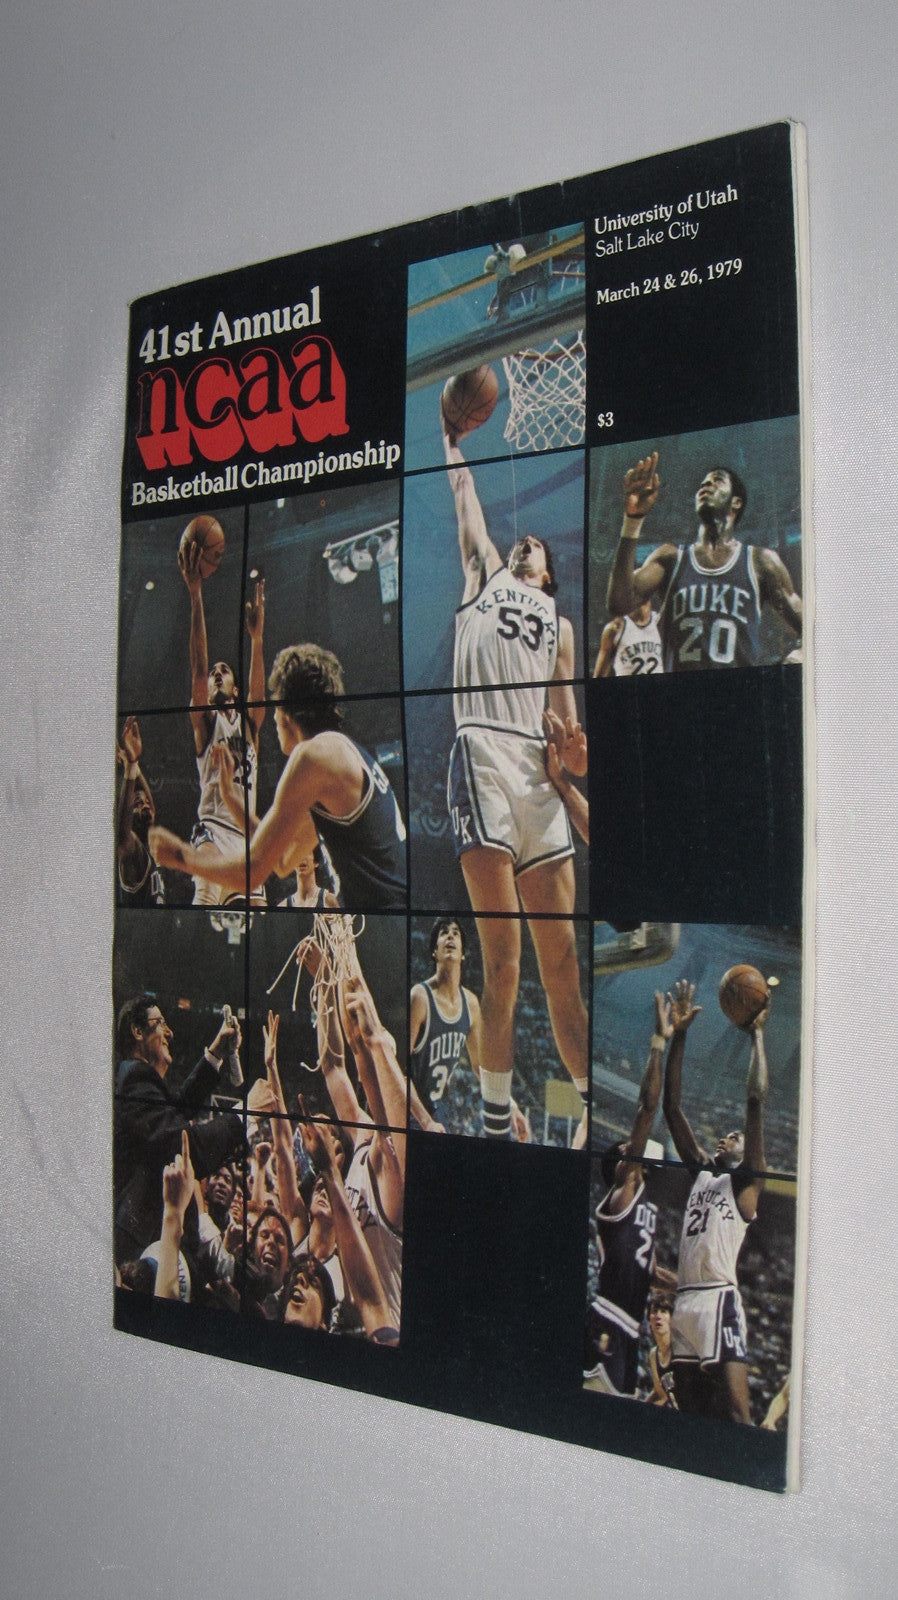 1979 NCAA Basketball Final 4 Larry Bird vs Magic Johnson - Vintage Indy Sports